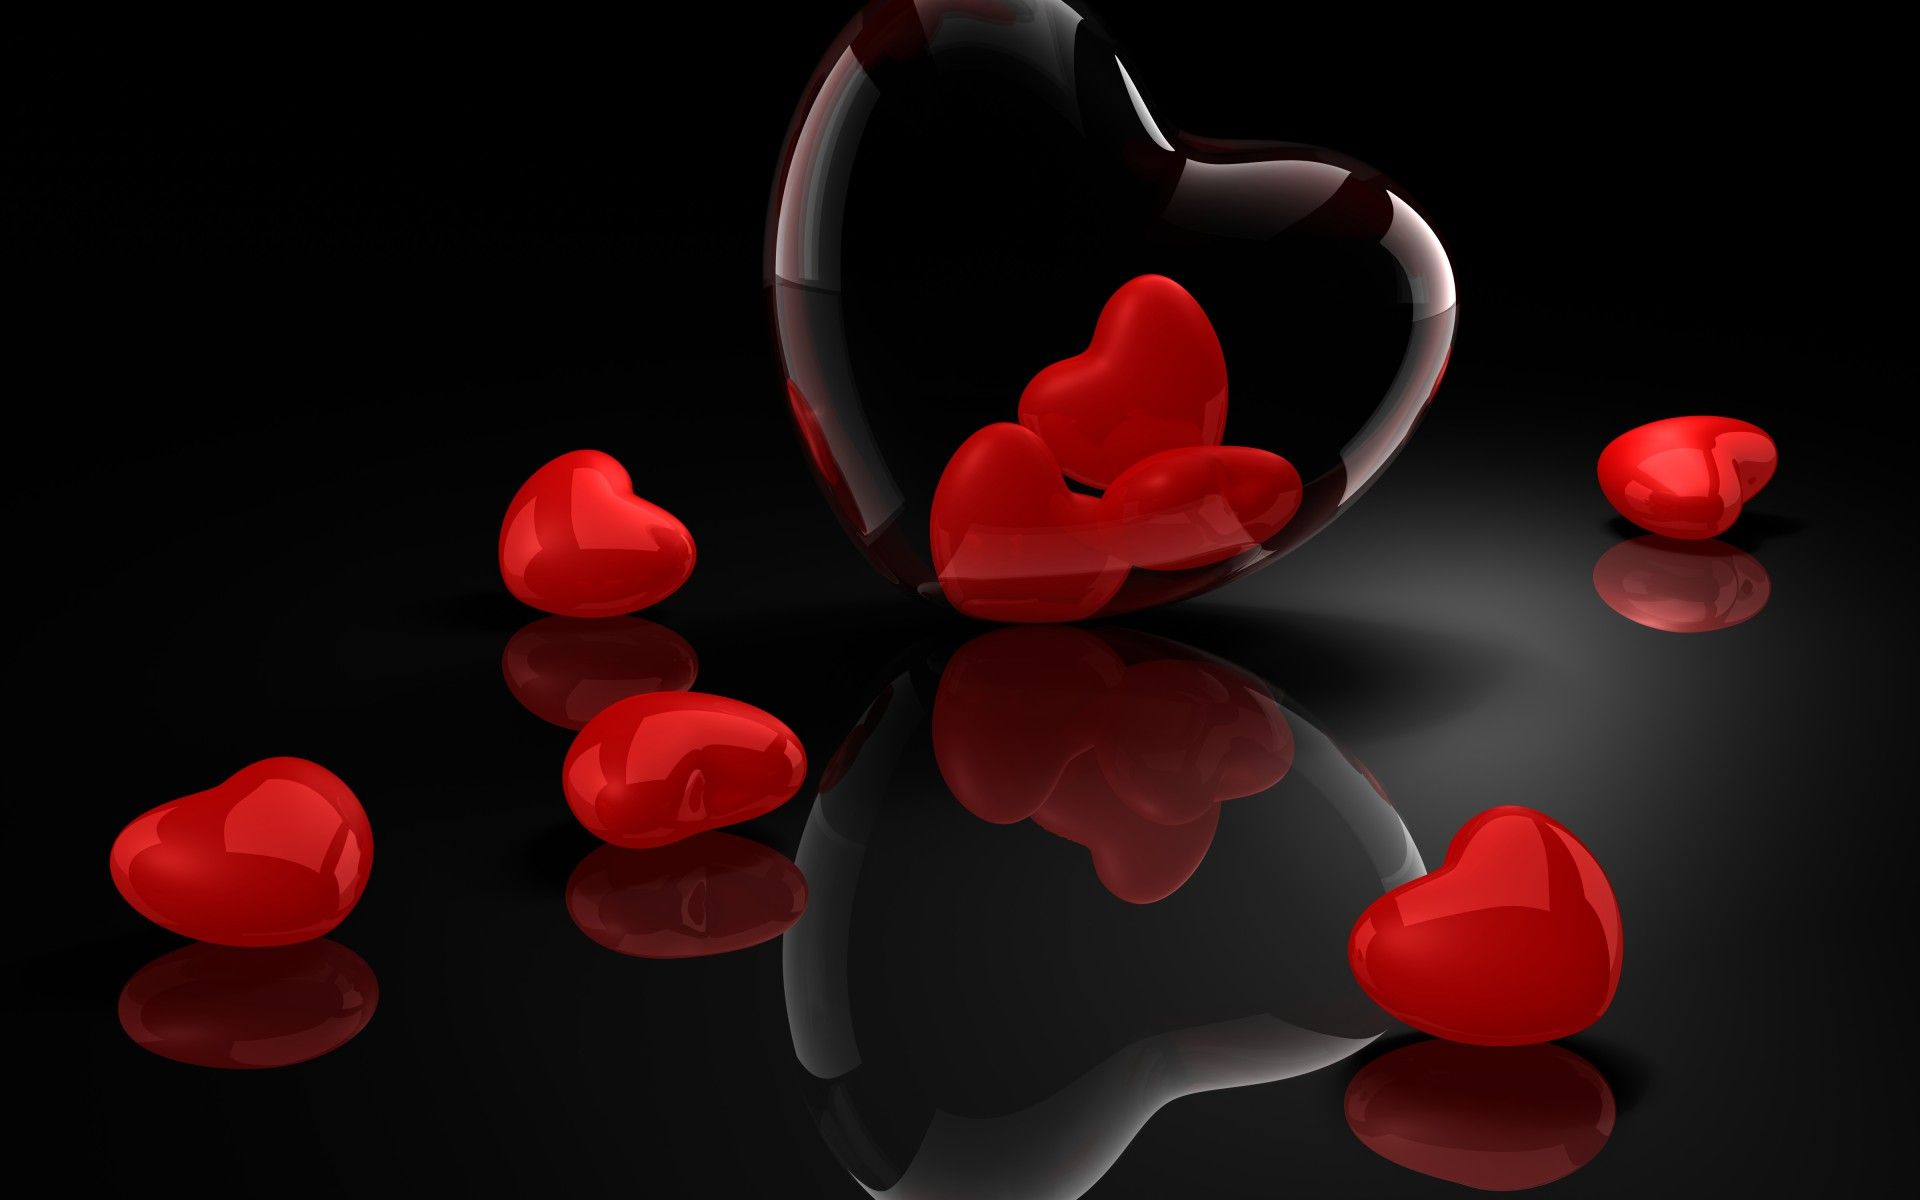 Glass Hearts On A Shiny Floor Misc Stuff Wallpapers Hd